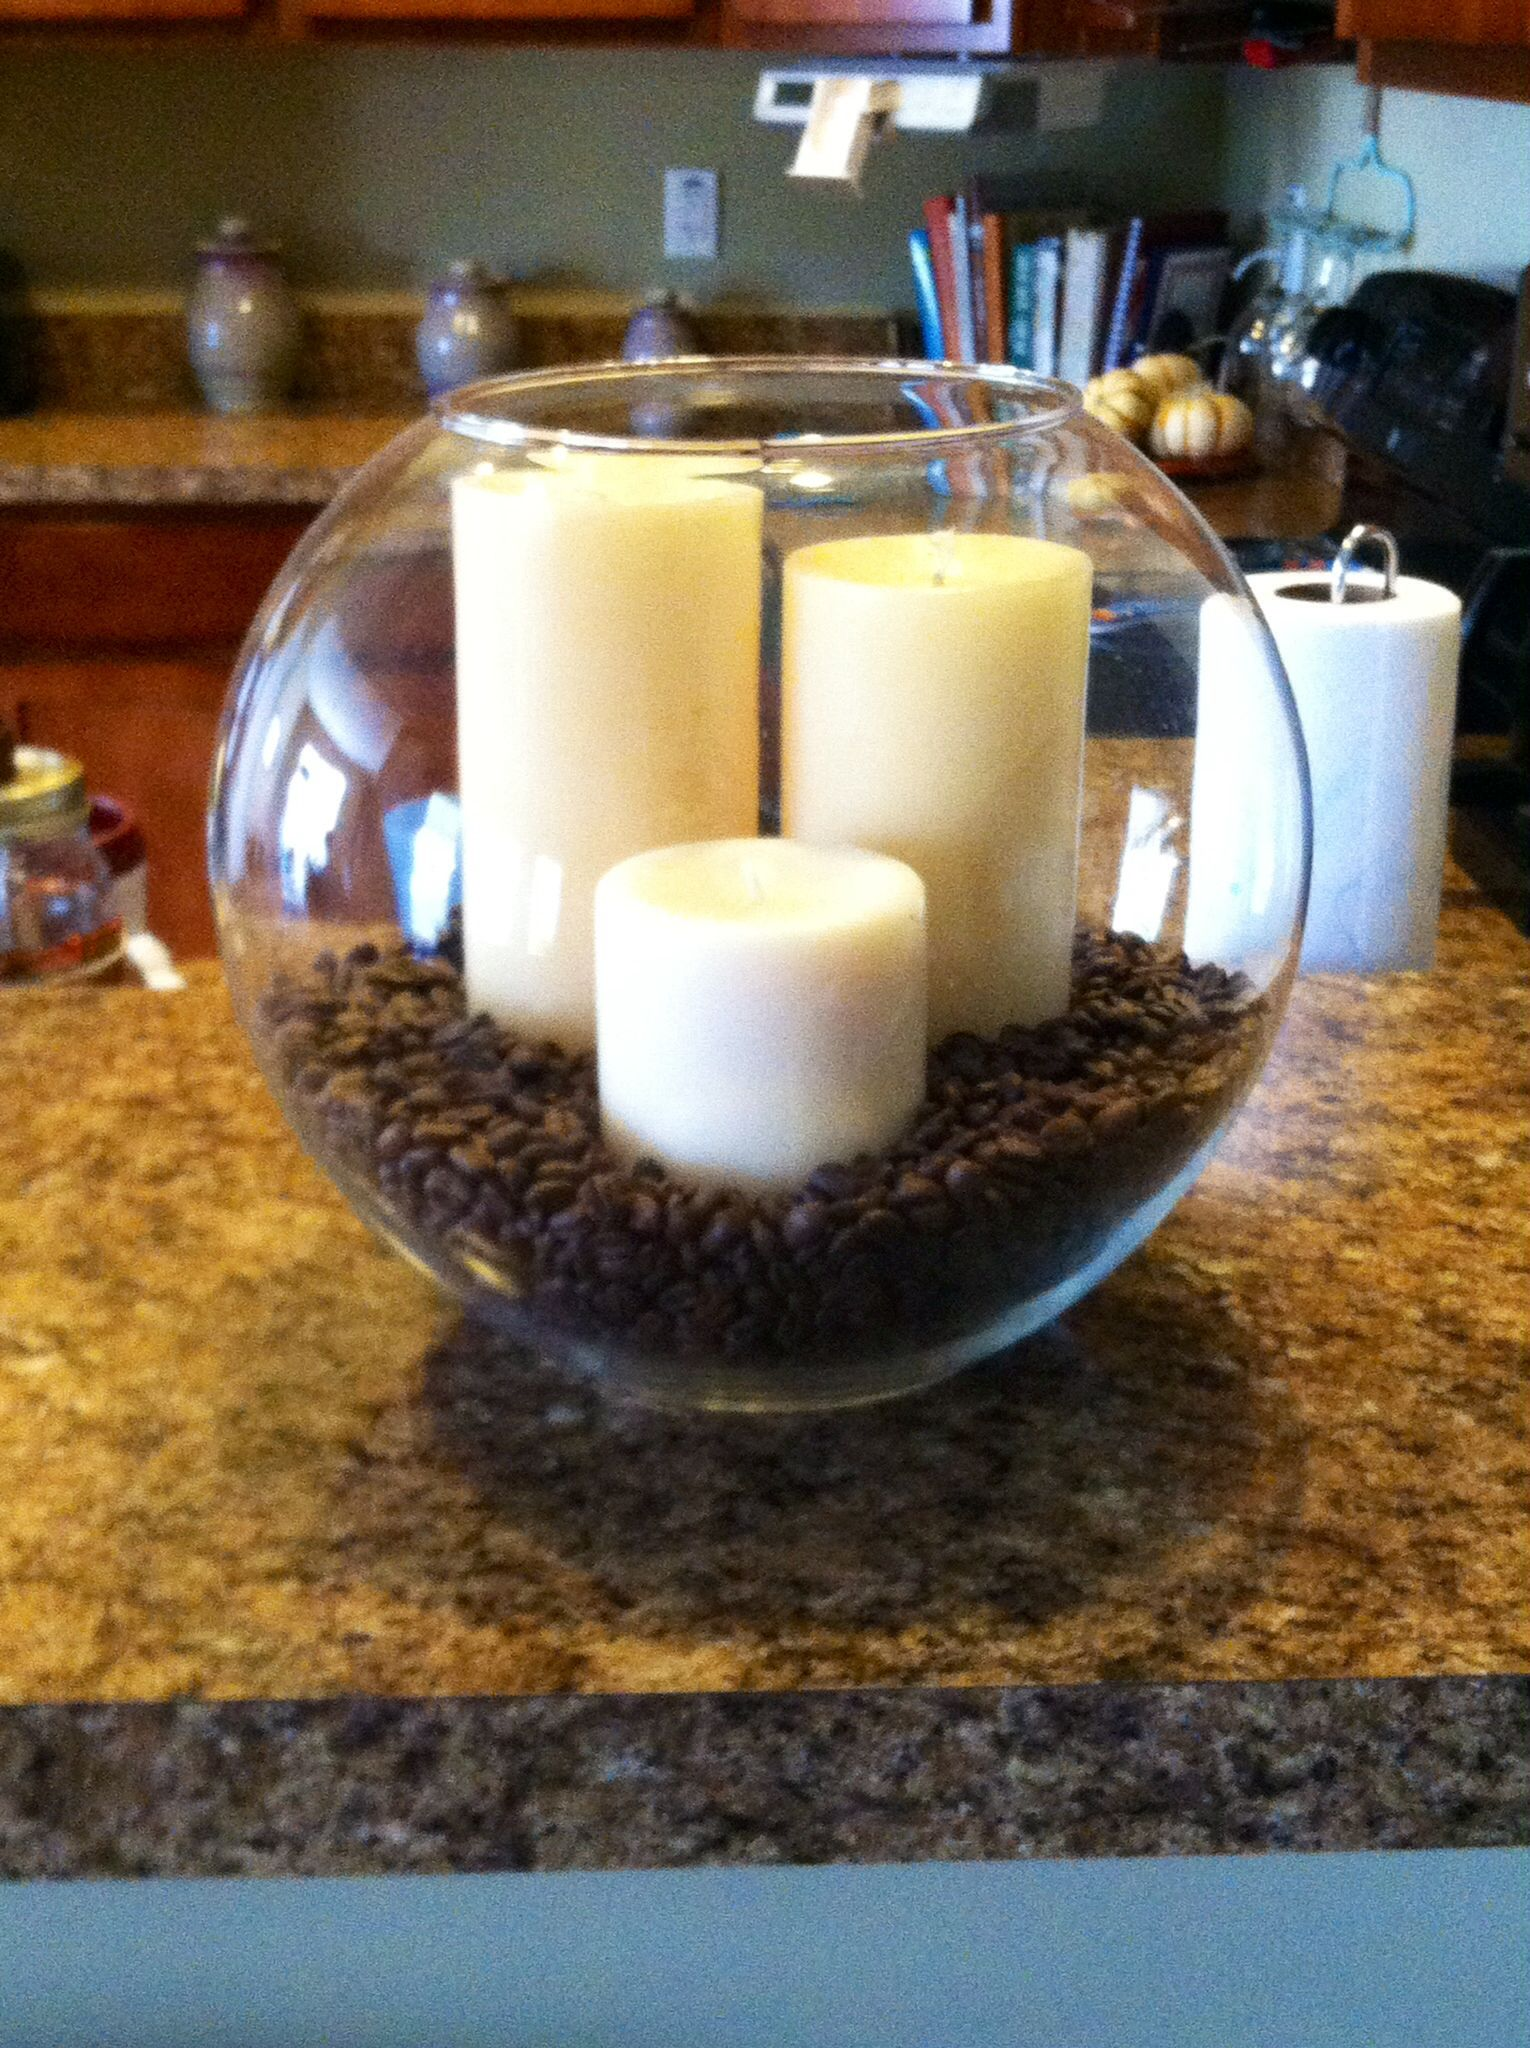 Candles and coffee beans display looking for something to do